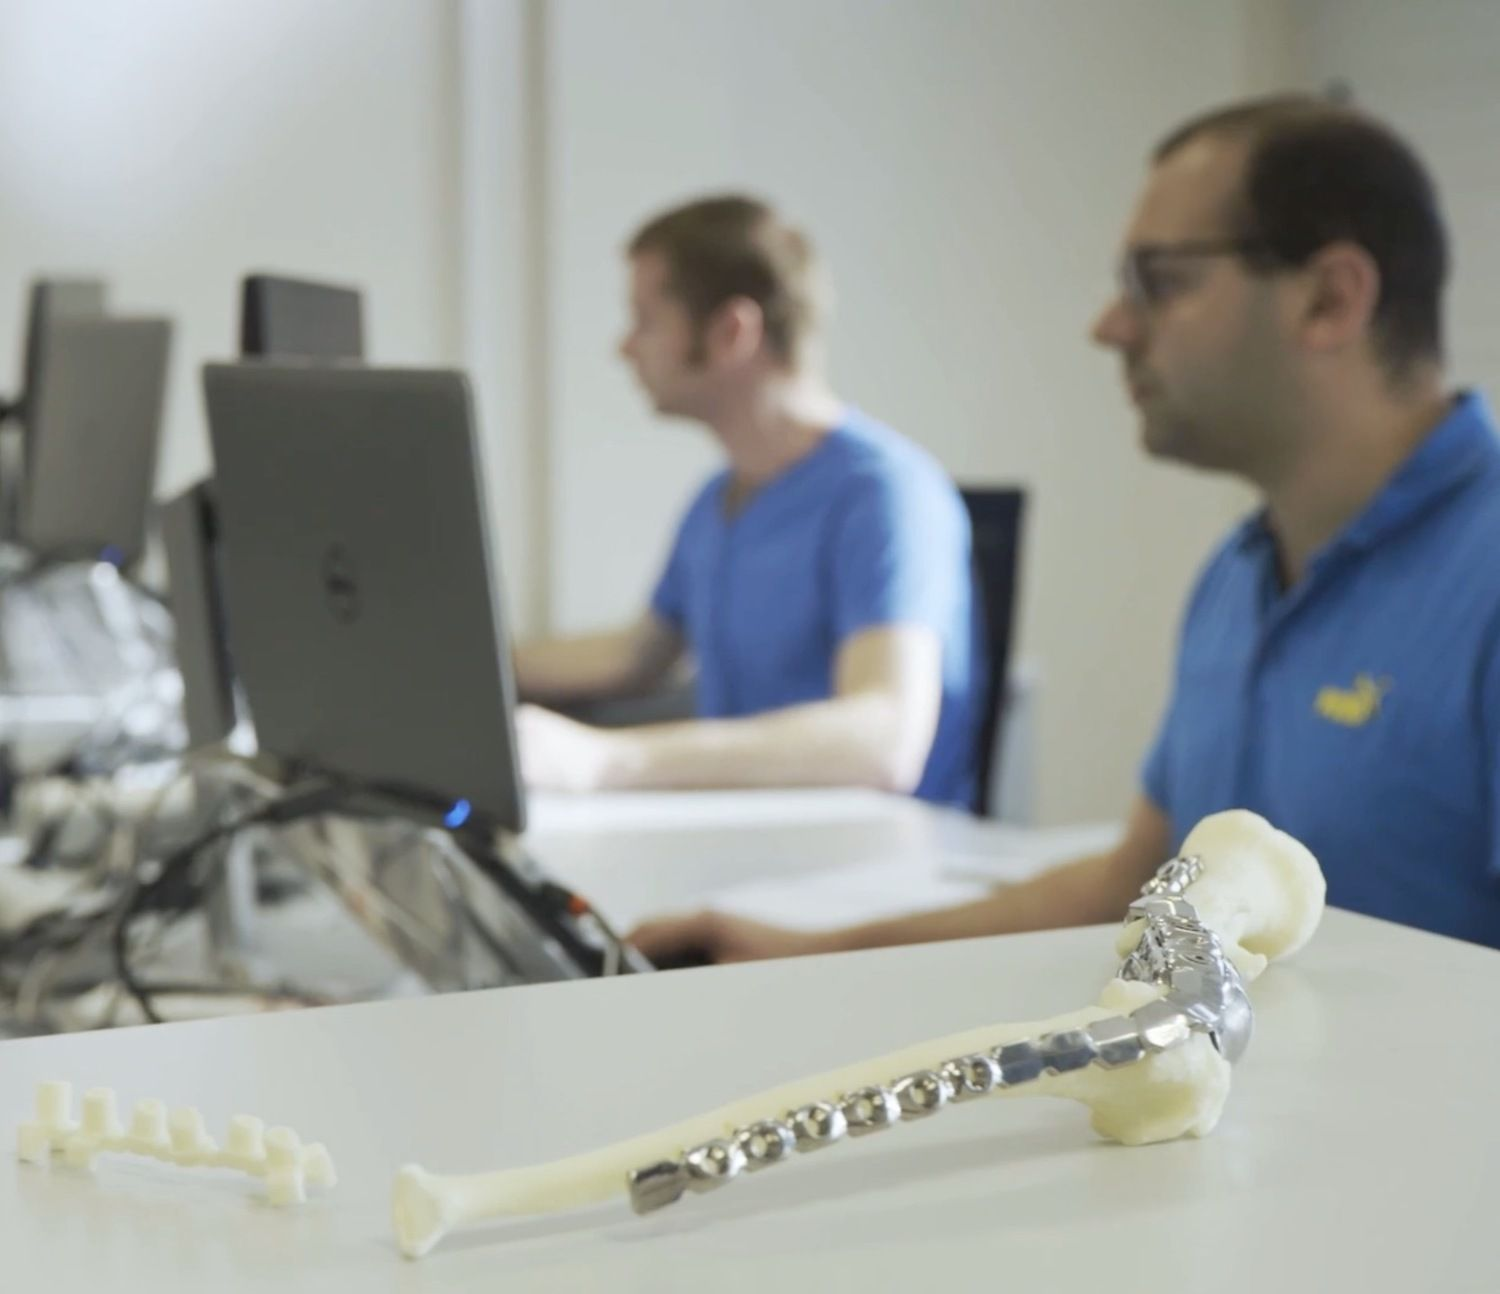 Materialise Packages Up All The 3D Printing Software You